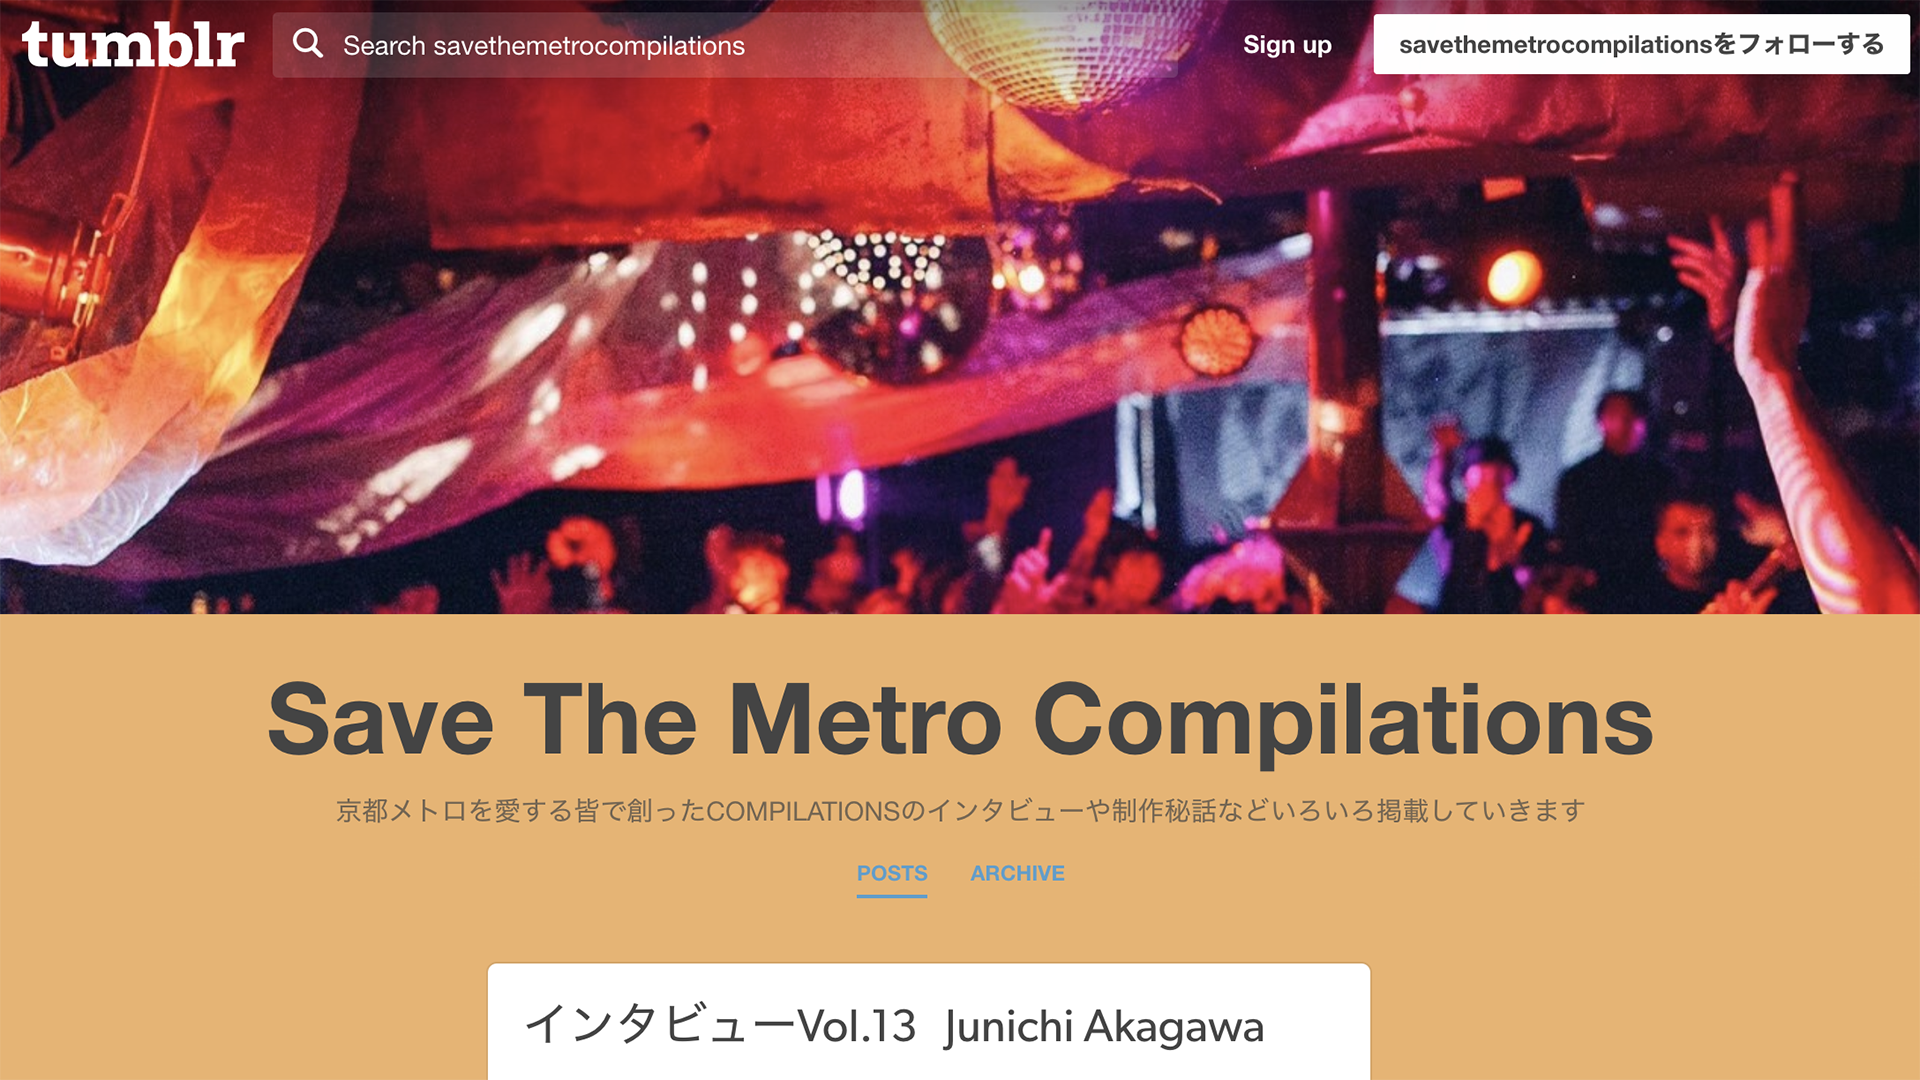 Save The Metro Compilations – Interview